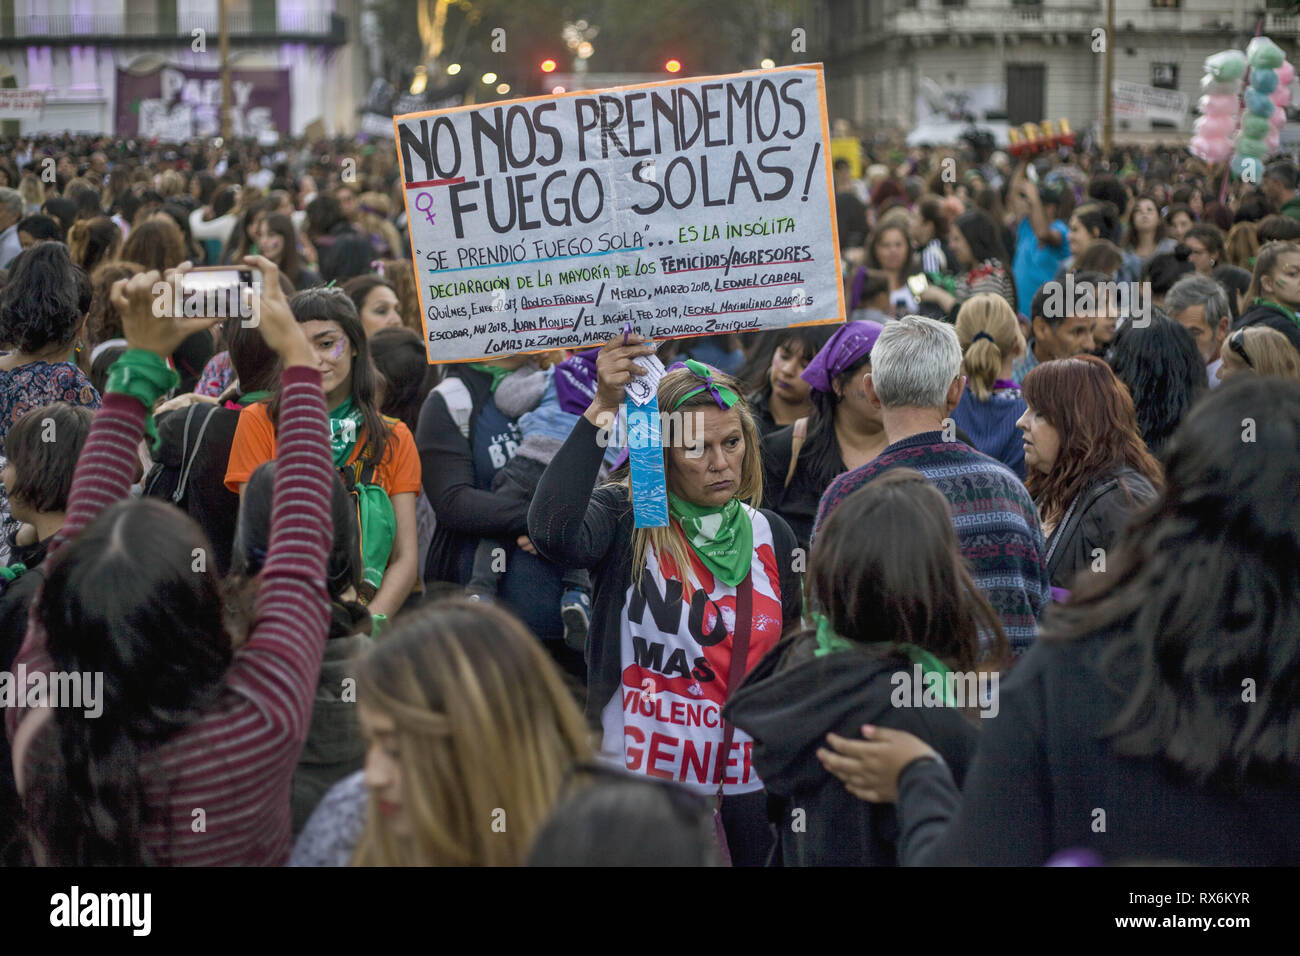 Buenos Aires, Federal Capital, Argentina. 8th Mar, 2019. On the occasion of International Women's Day, feminist groups from across the country called for a march throughout the country. At around 8:30 pm, more than 100 thousand people were present at the mobilization and subsequent concentration.In the center of Buenos Aires, since the morning, various groups of women took to the streets to make their demands heard. In the streets surrounding the National Congress there are several groups that claimed from the early hours of the afternoon for the rights of women. (Credit Image: © Roberto A - Stock Image